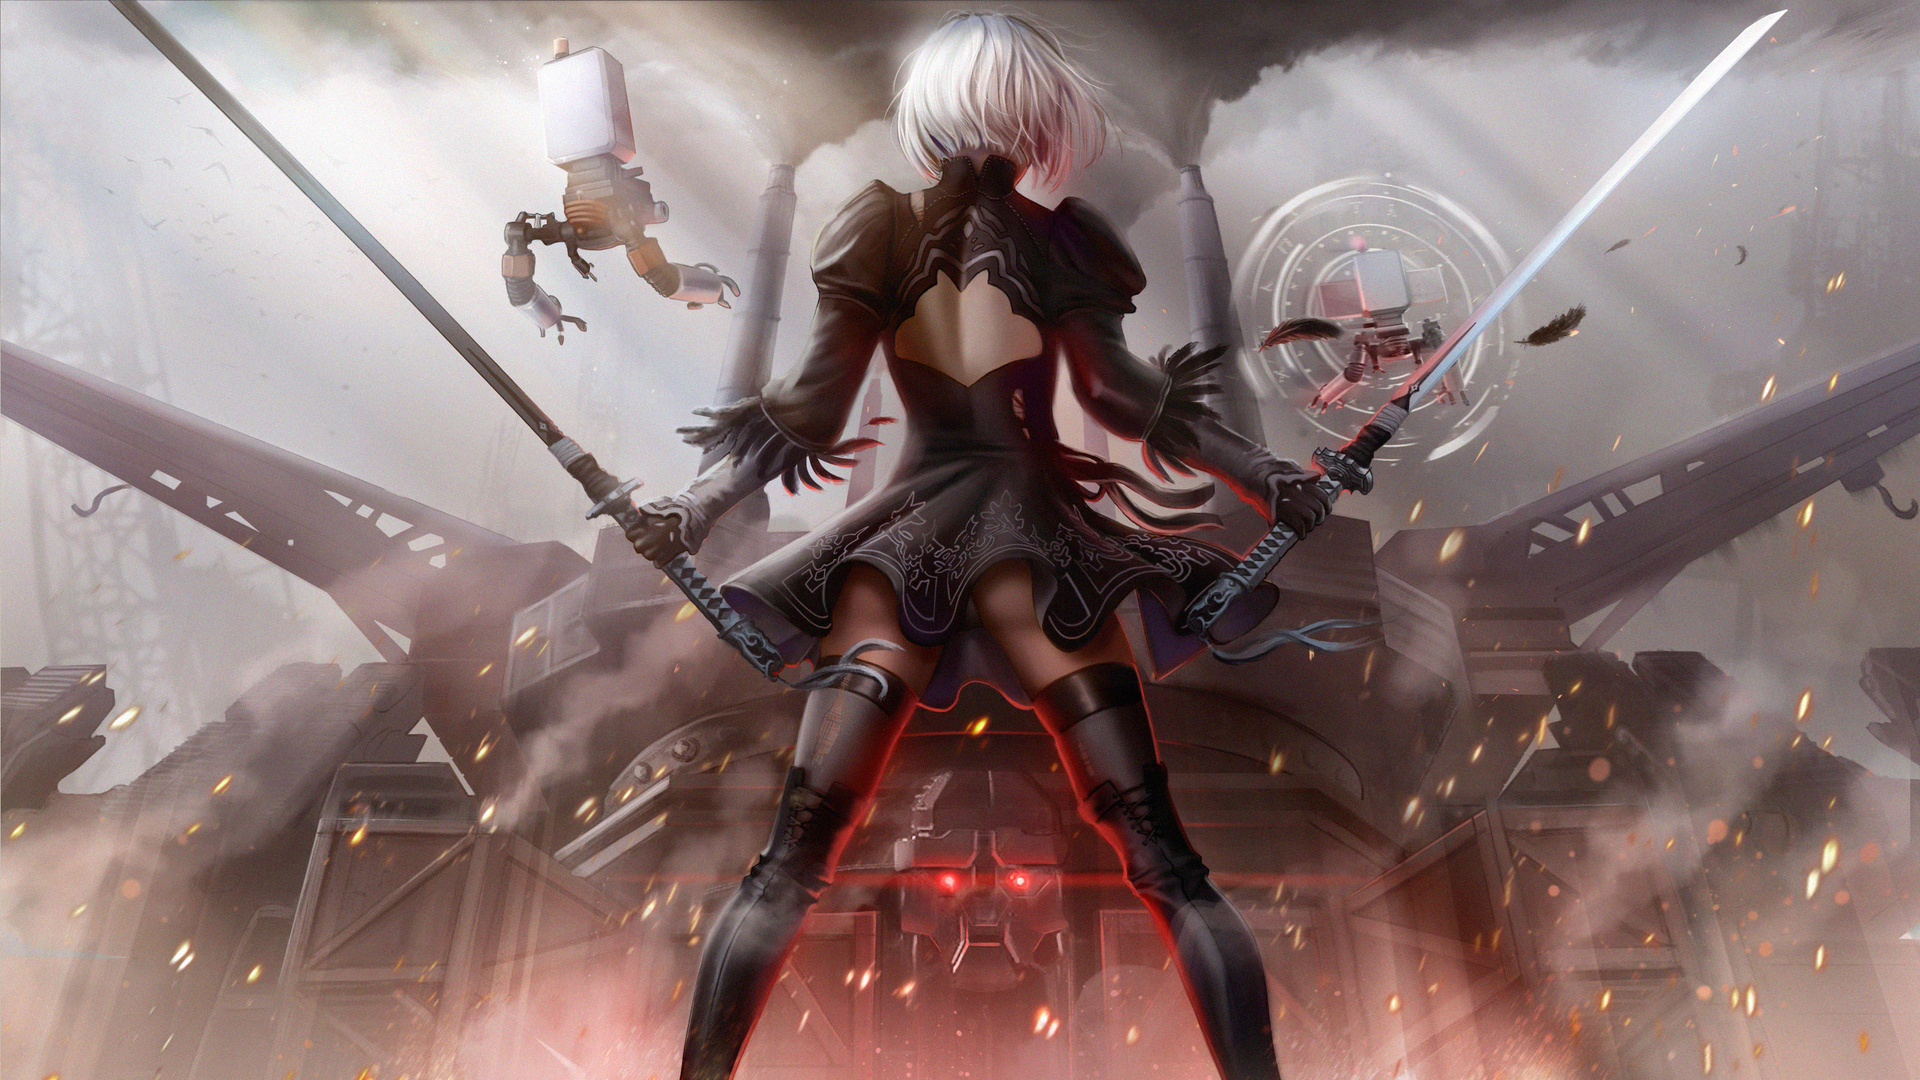 1920x1080 2b Nier Automata Art Laptop Full Hd 1080p Hd 4k Wallpapers Images Backgrounds Photos And Pictures